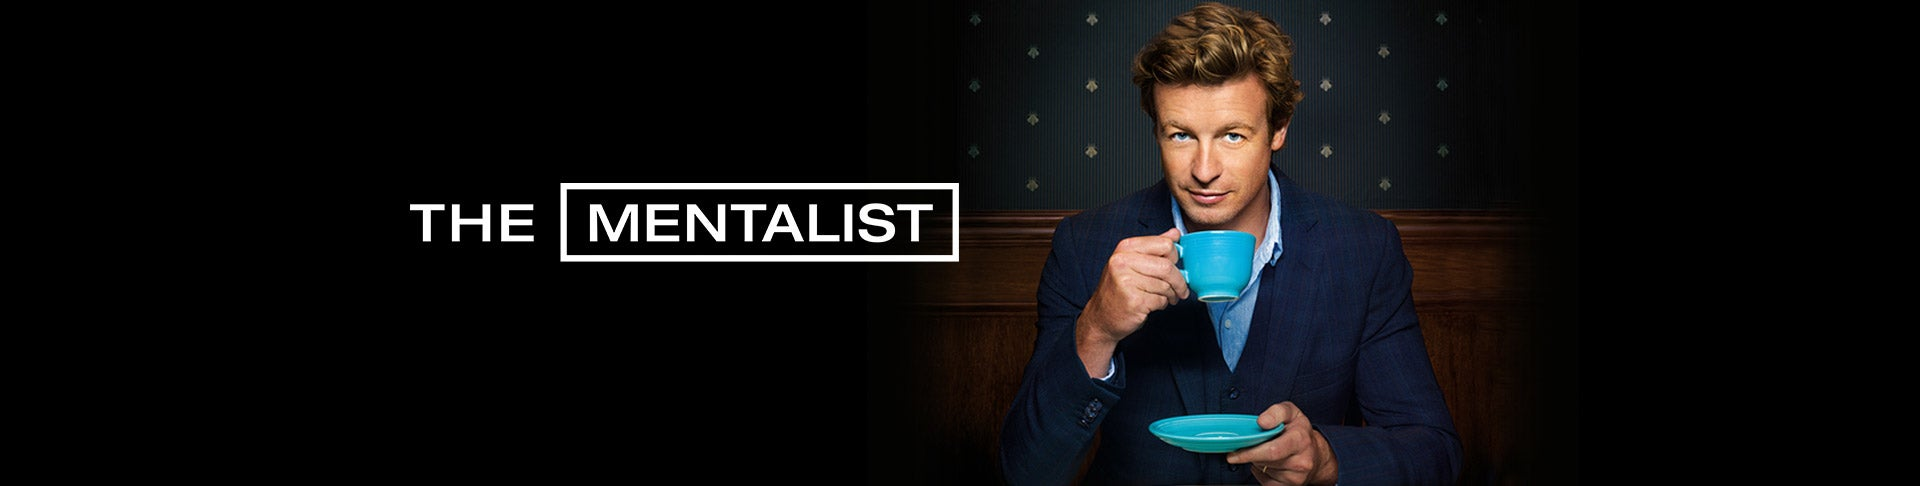 The Mentalist - Network Ten